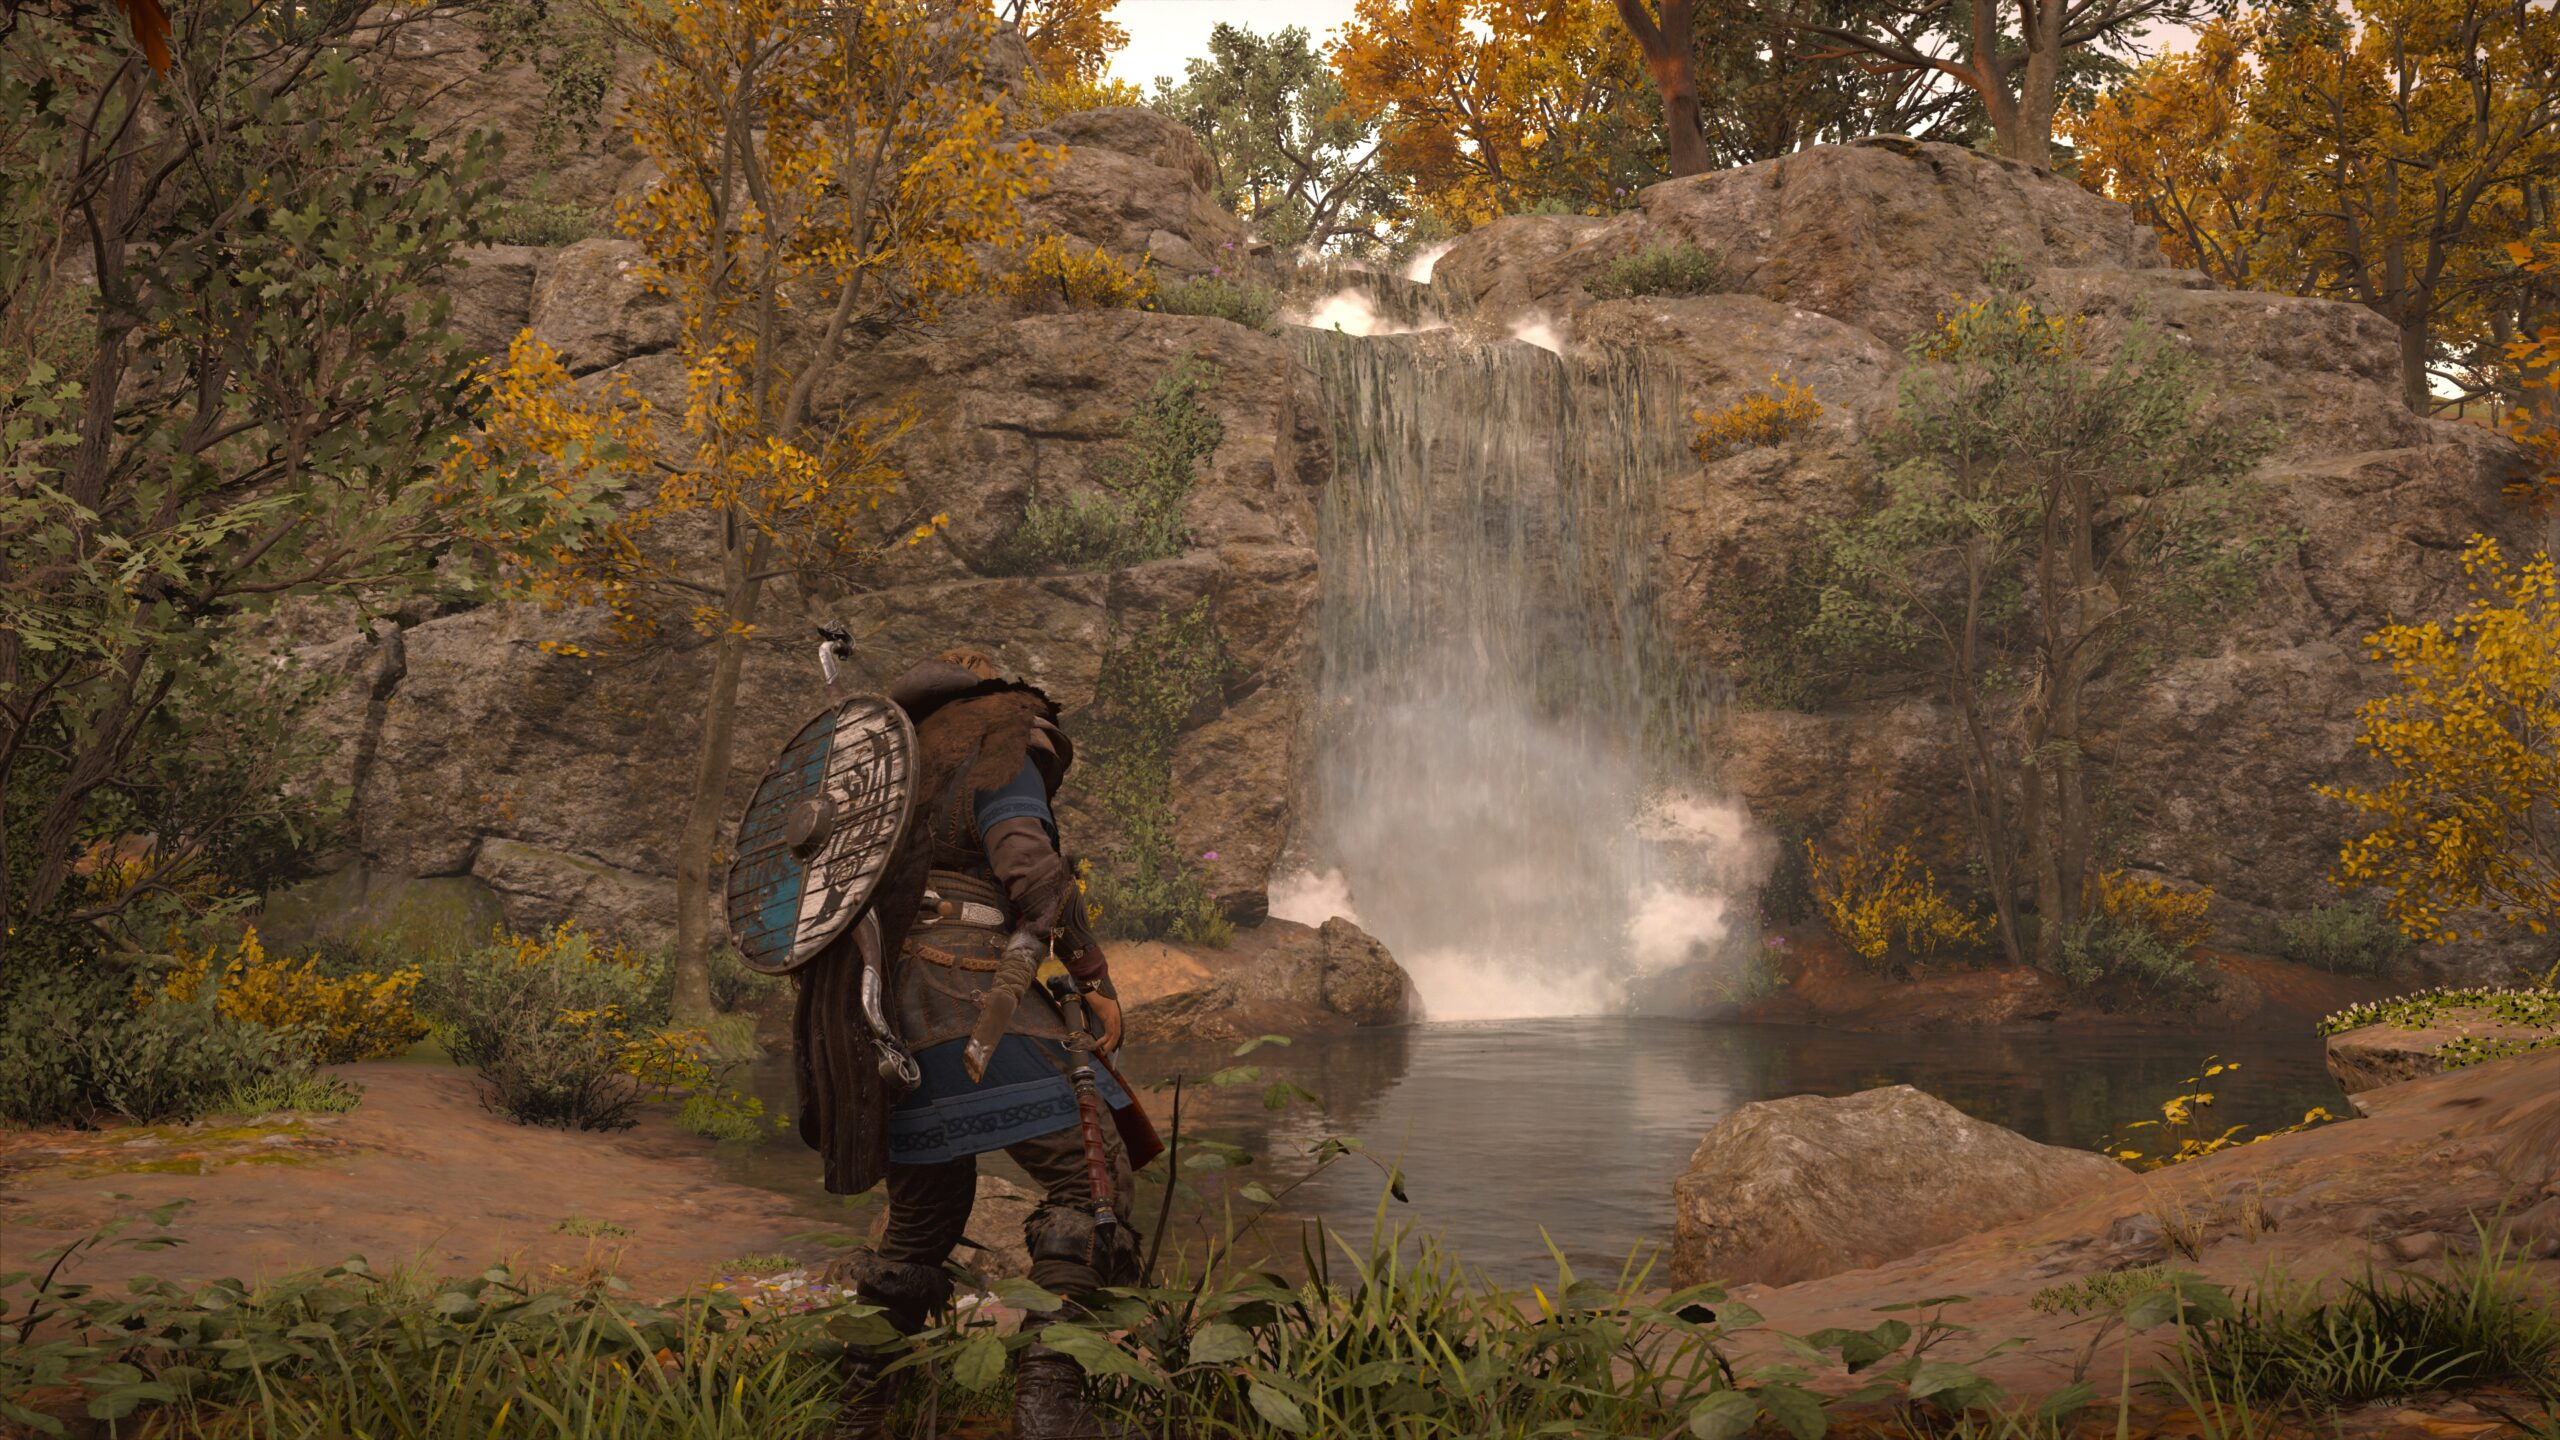 Valhalla Water fall